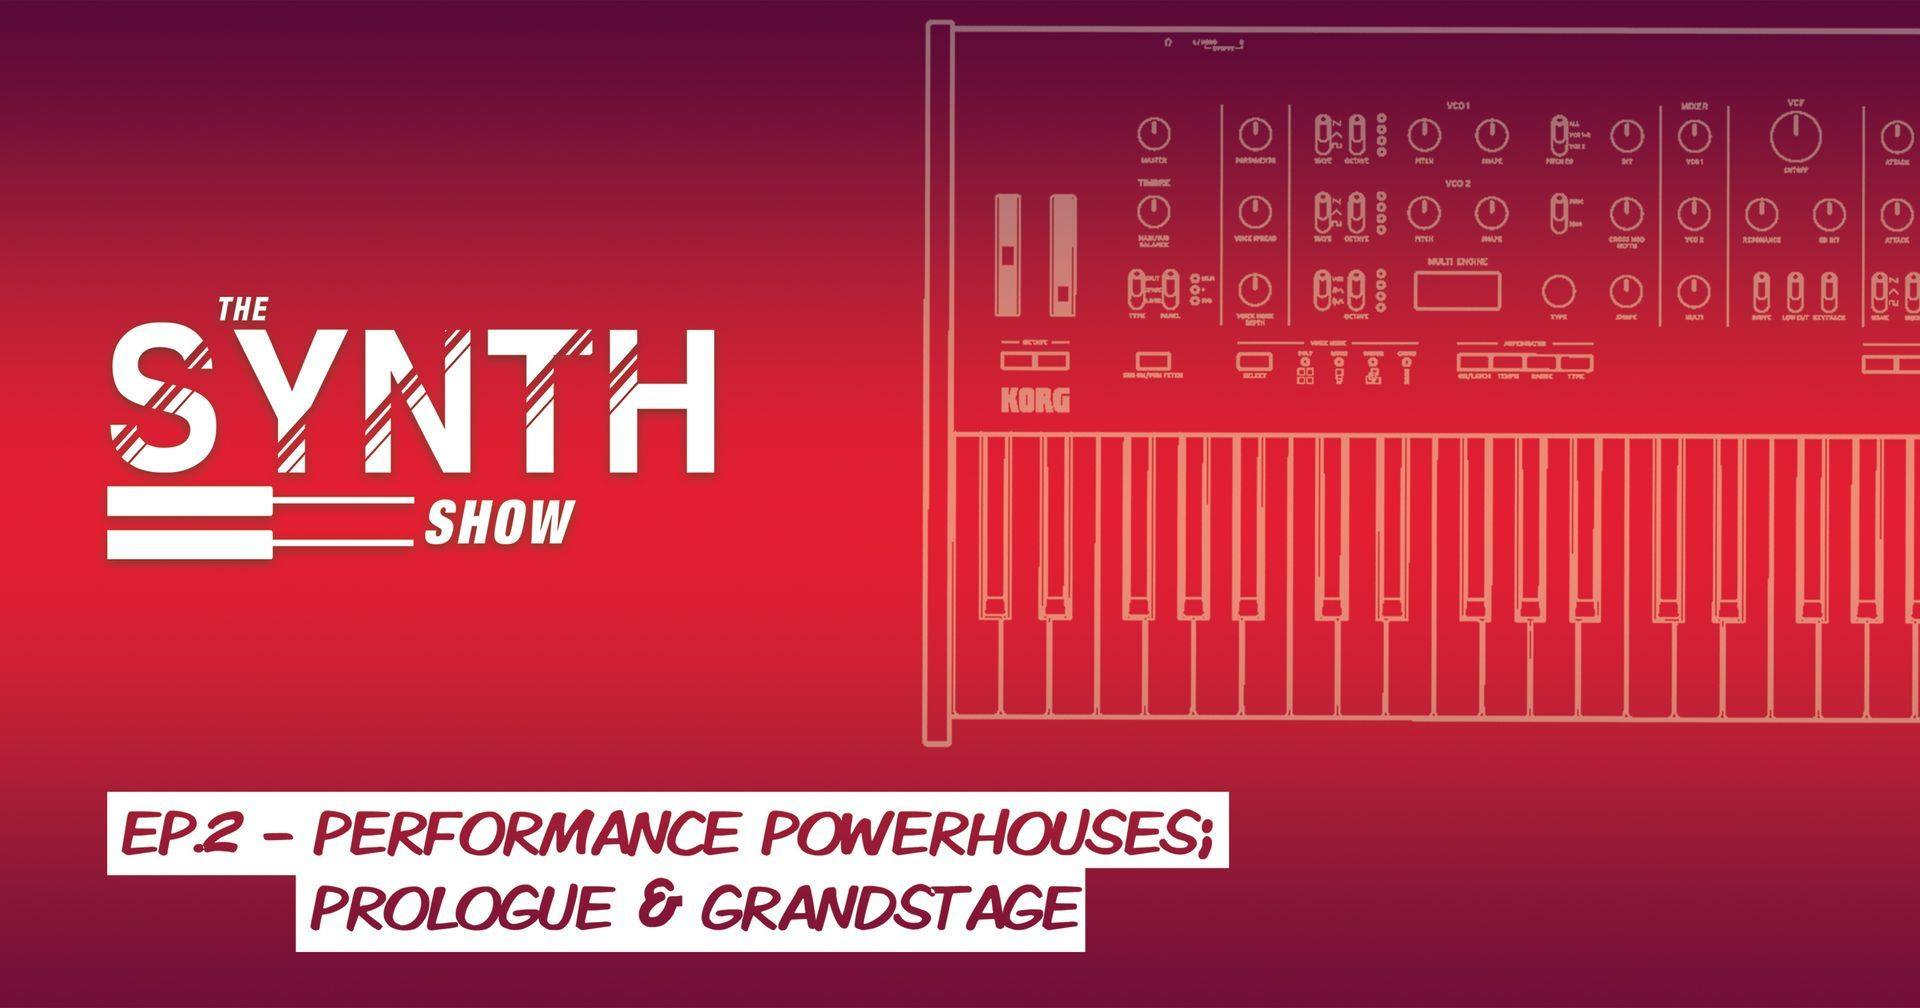 Don't miss episode 2 of The Synth Show! In this live webinar we will be digging into two of our performance powerhouses; prologue and Grandstage.